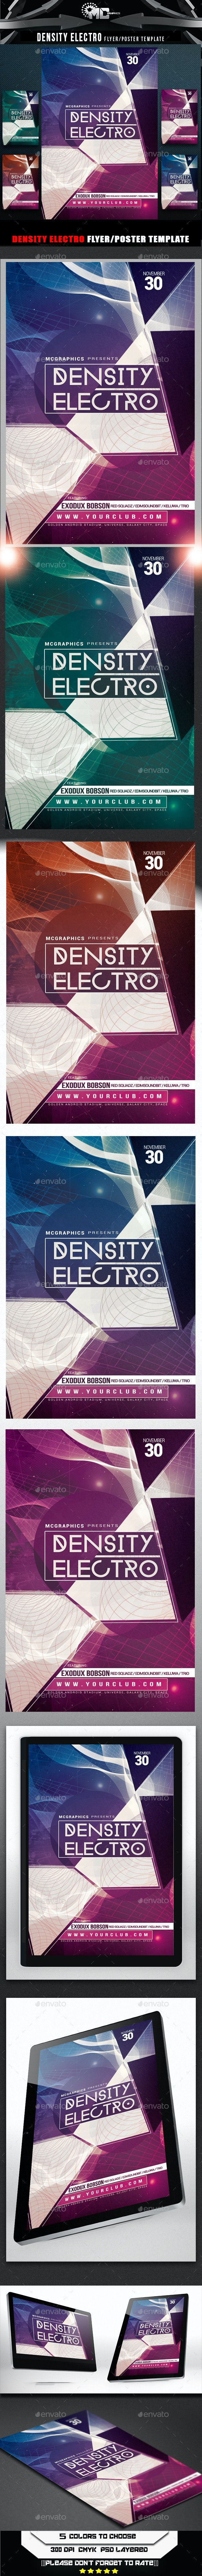 Density Electro Flyer Template - Clubs & Parties Events